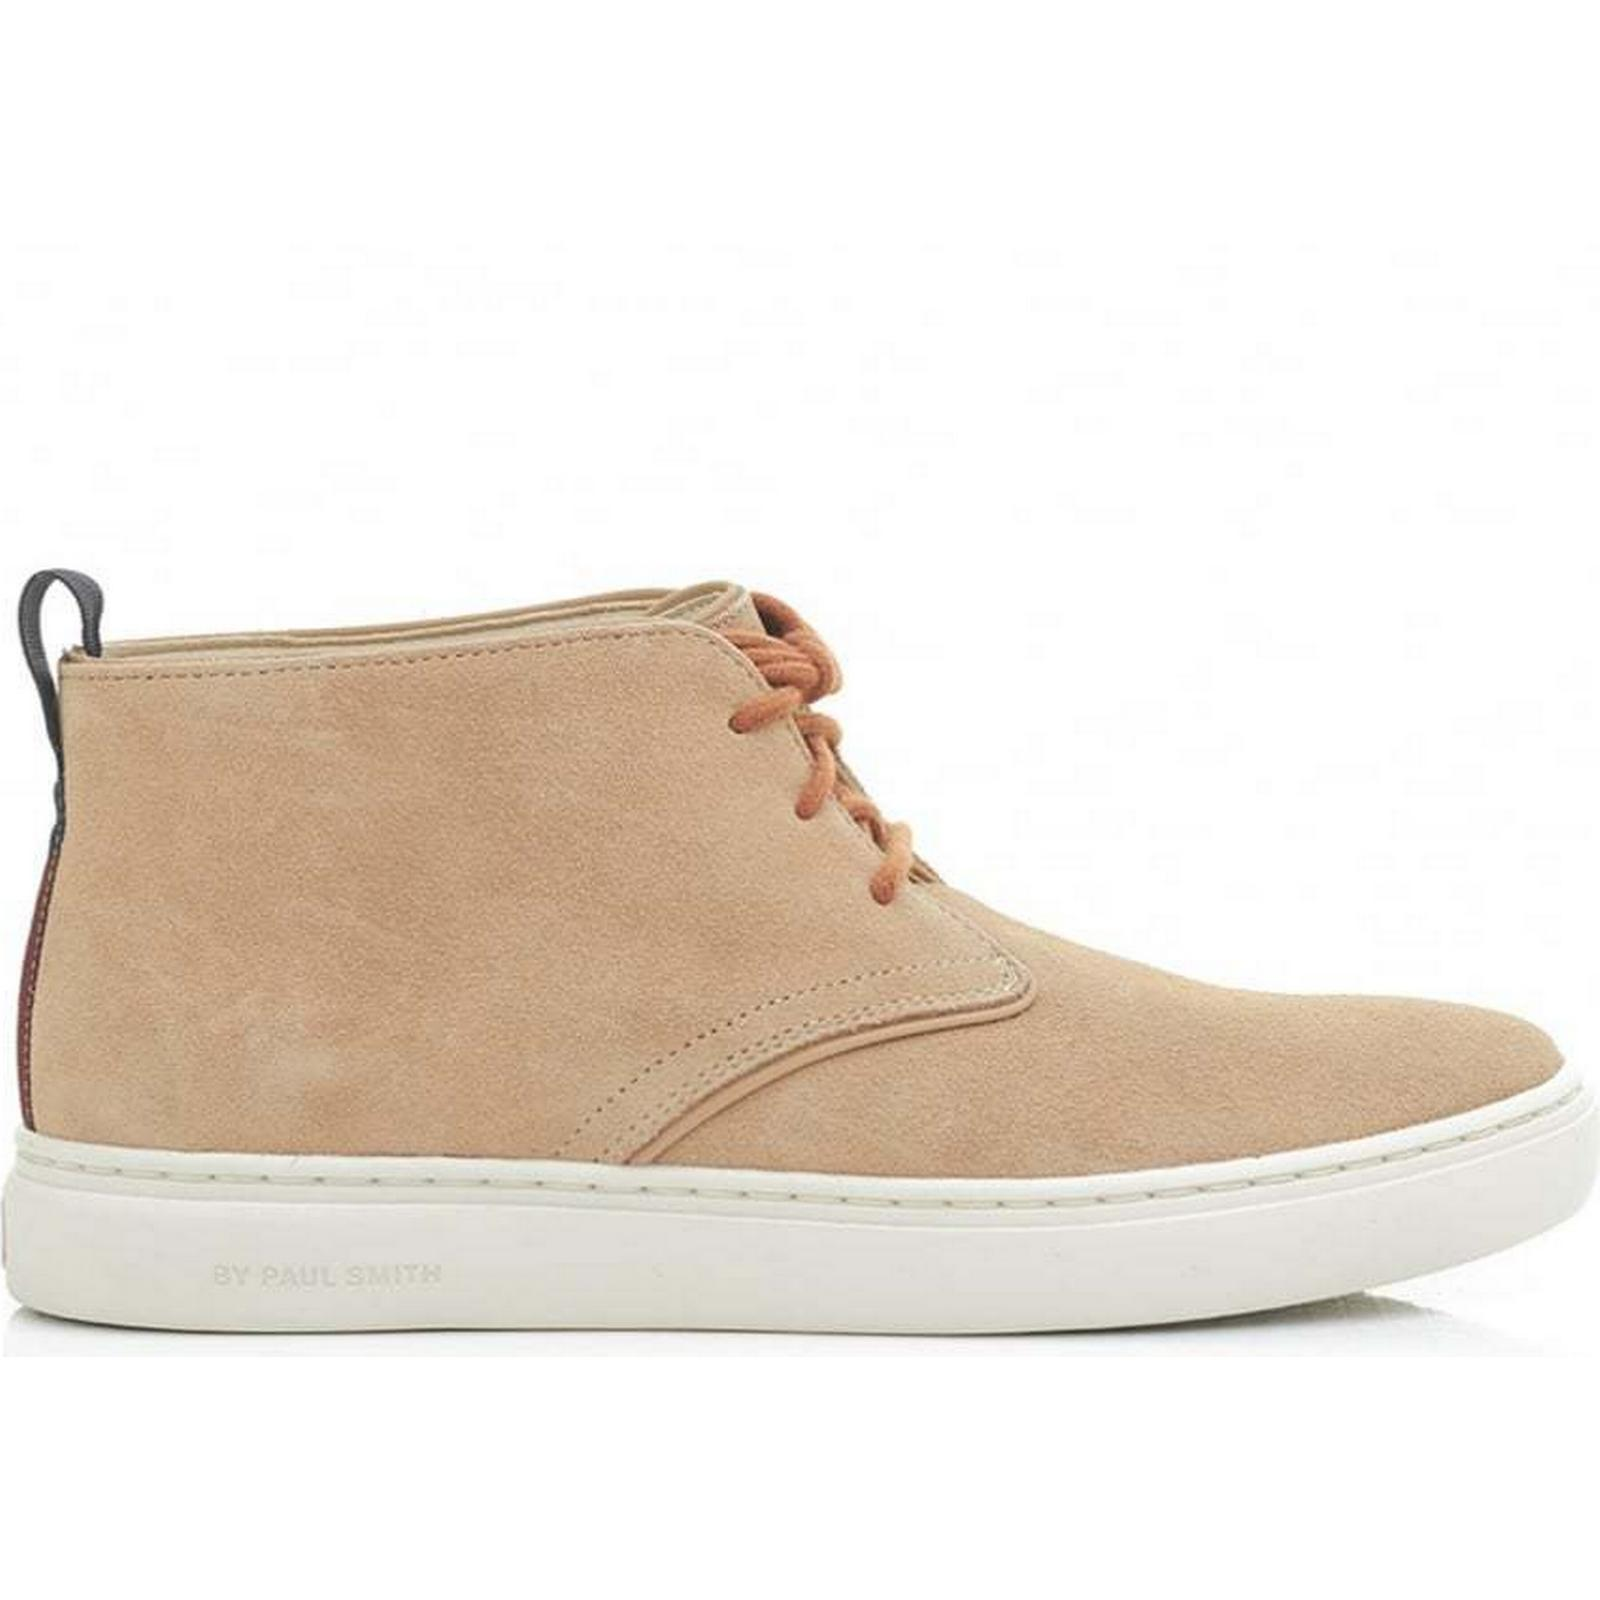 Paul Boots Smith Fong Suede Cupsole Chukka Boots Paul Colour: SAND, Size: 11 825ae3